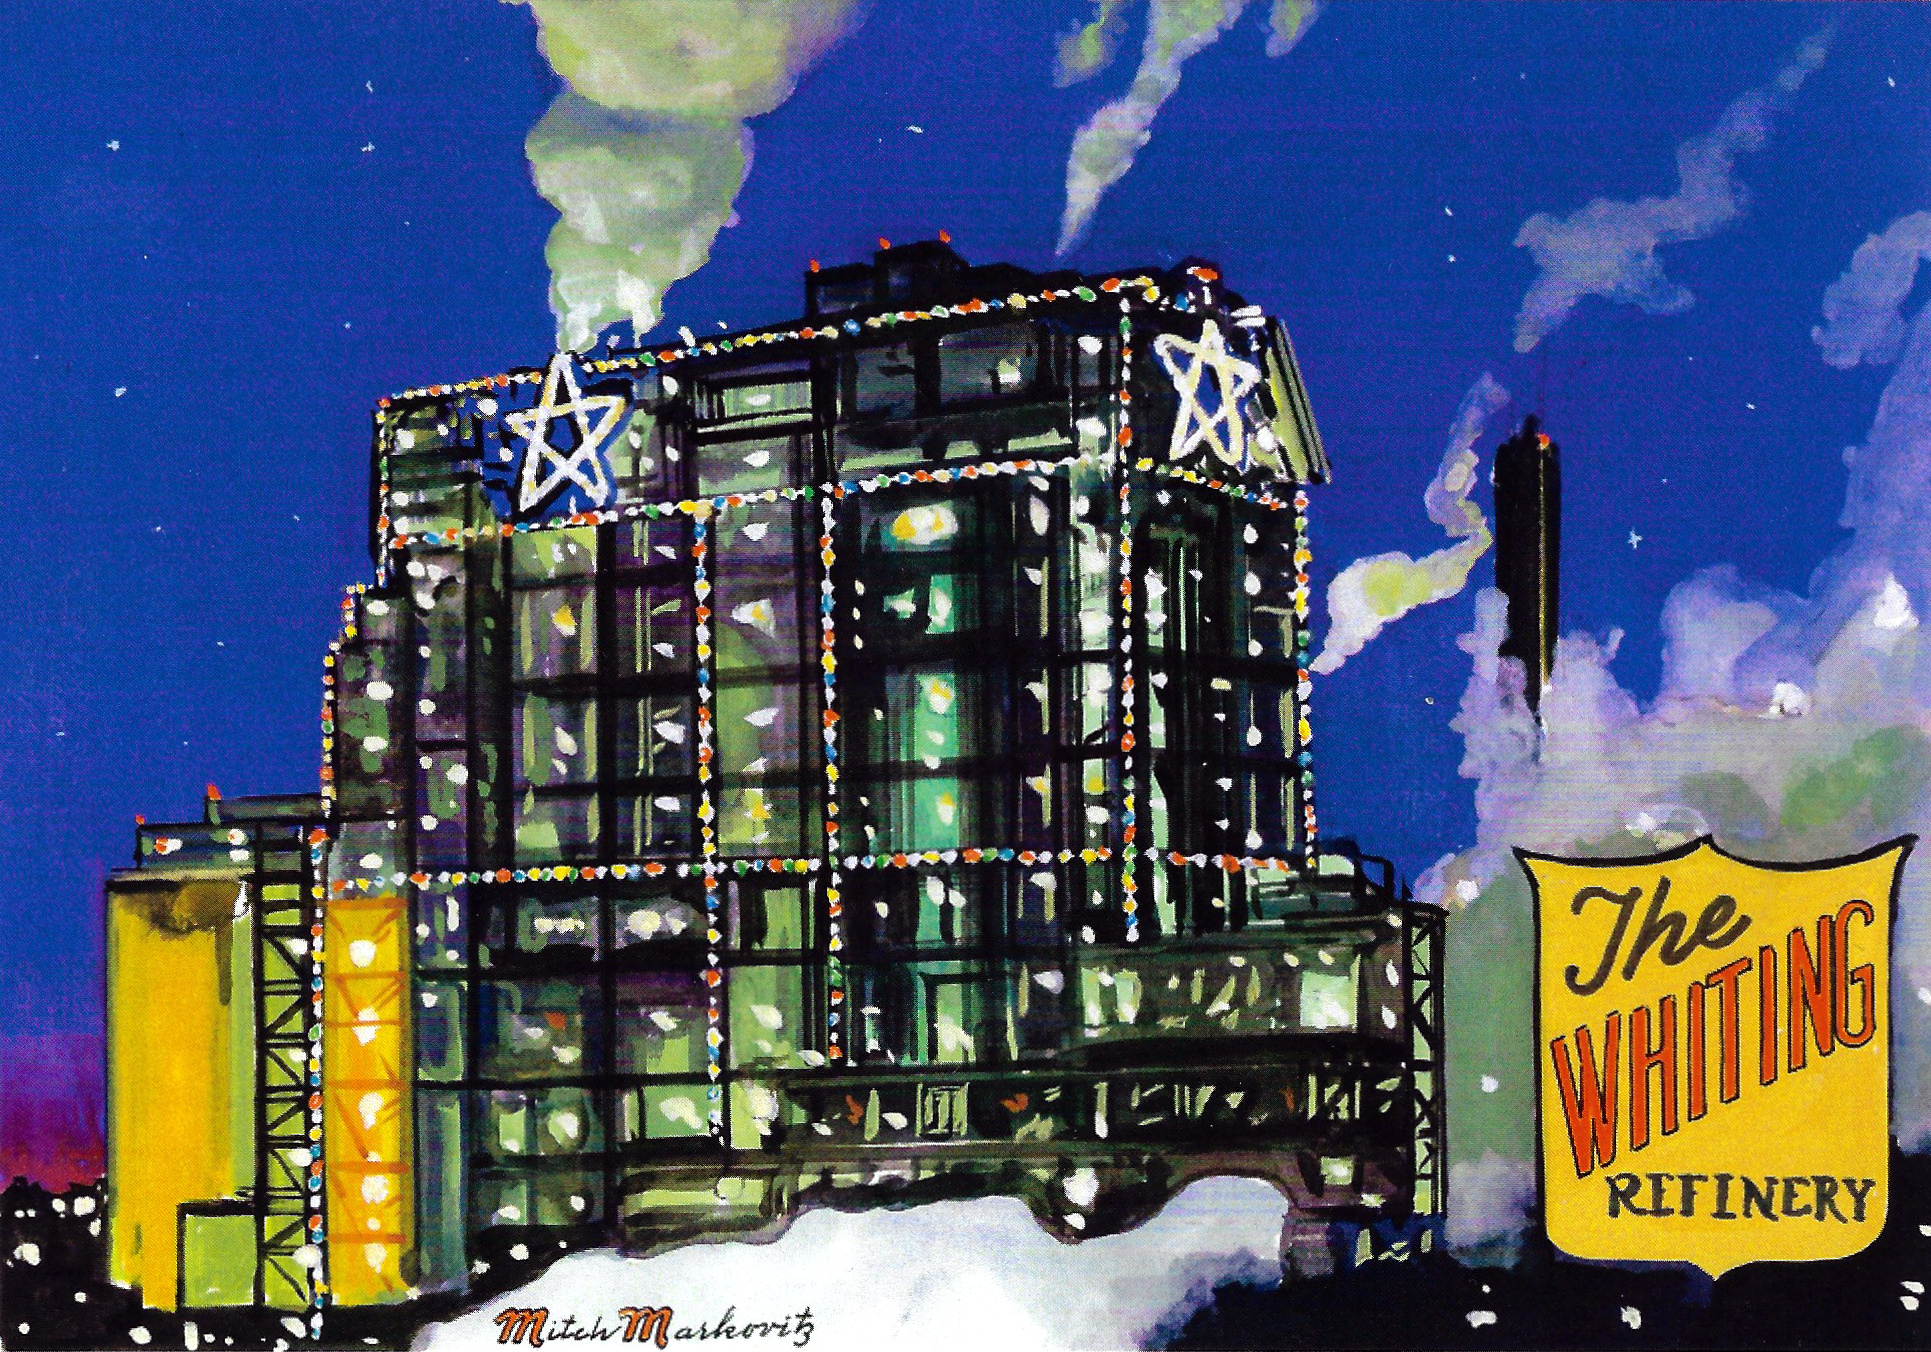 Card #12 in the Life of Whiting Series by artist Mitch Markovitz shows the stars on top of the refinery's cat cracker.